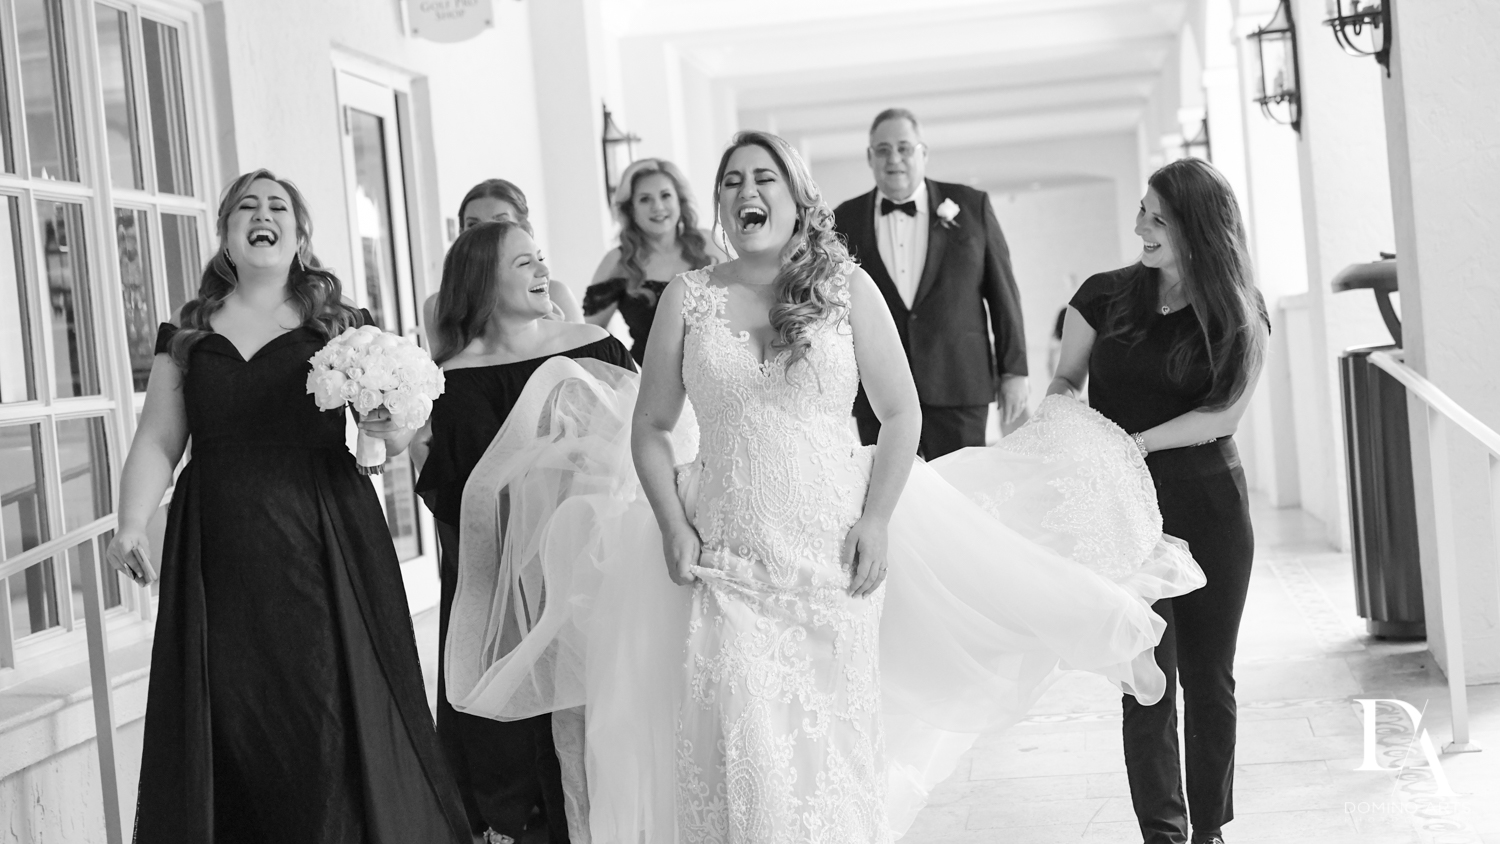 B&W photo journalistic pictures at Ultimate Events Wedding at Turnberry Isle Resort Miami by Domino Arts Photography